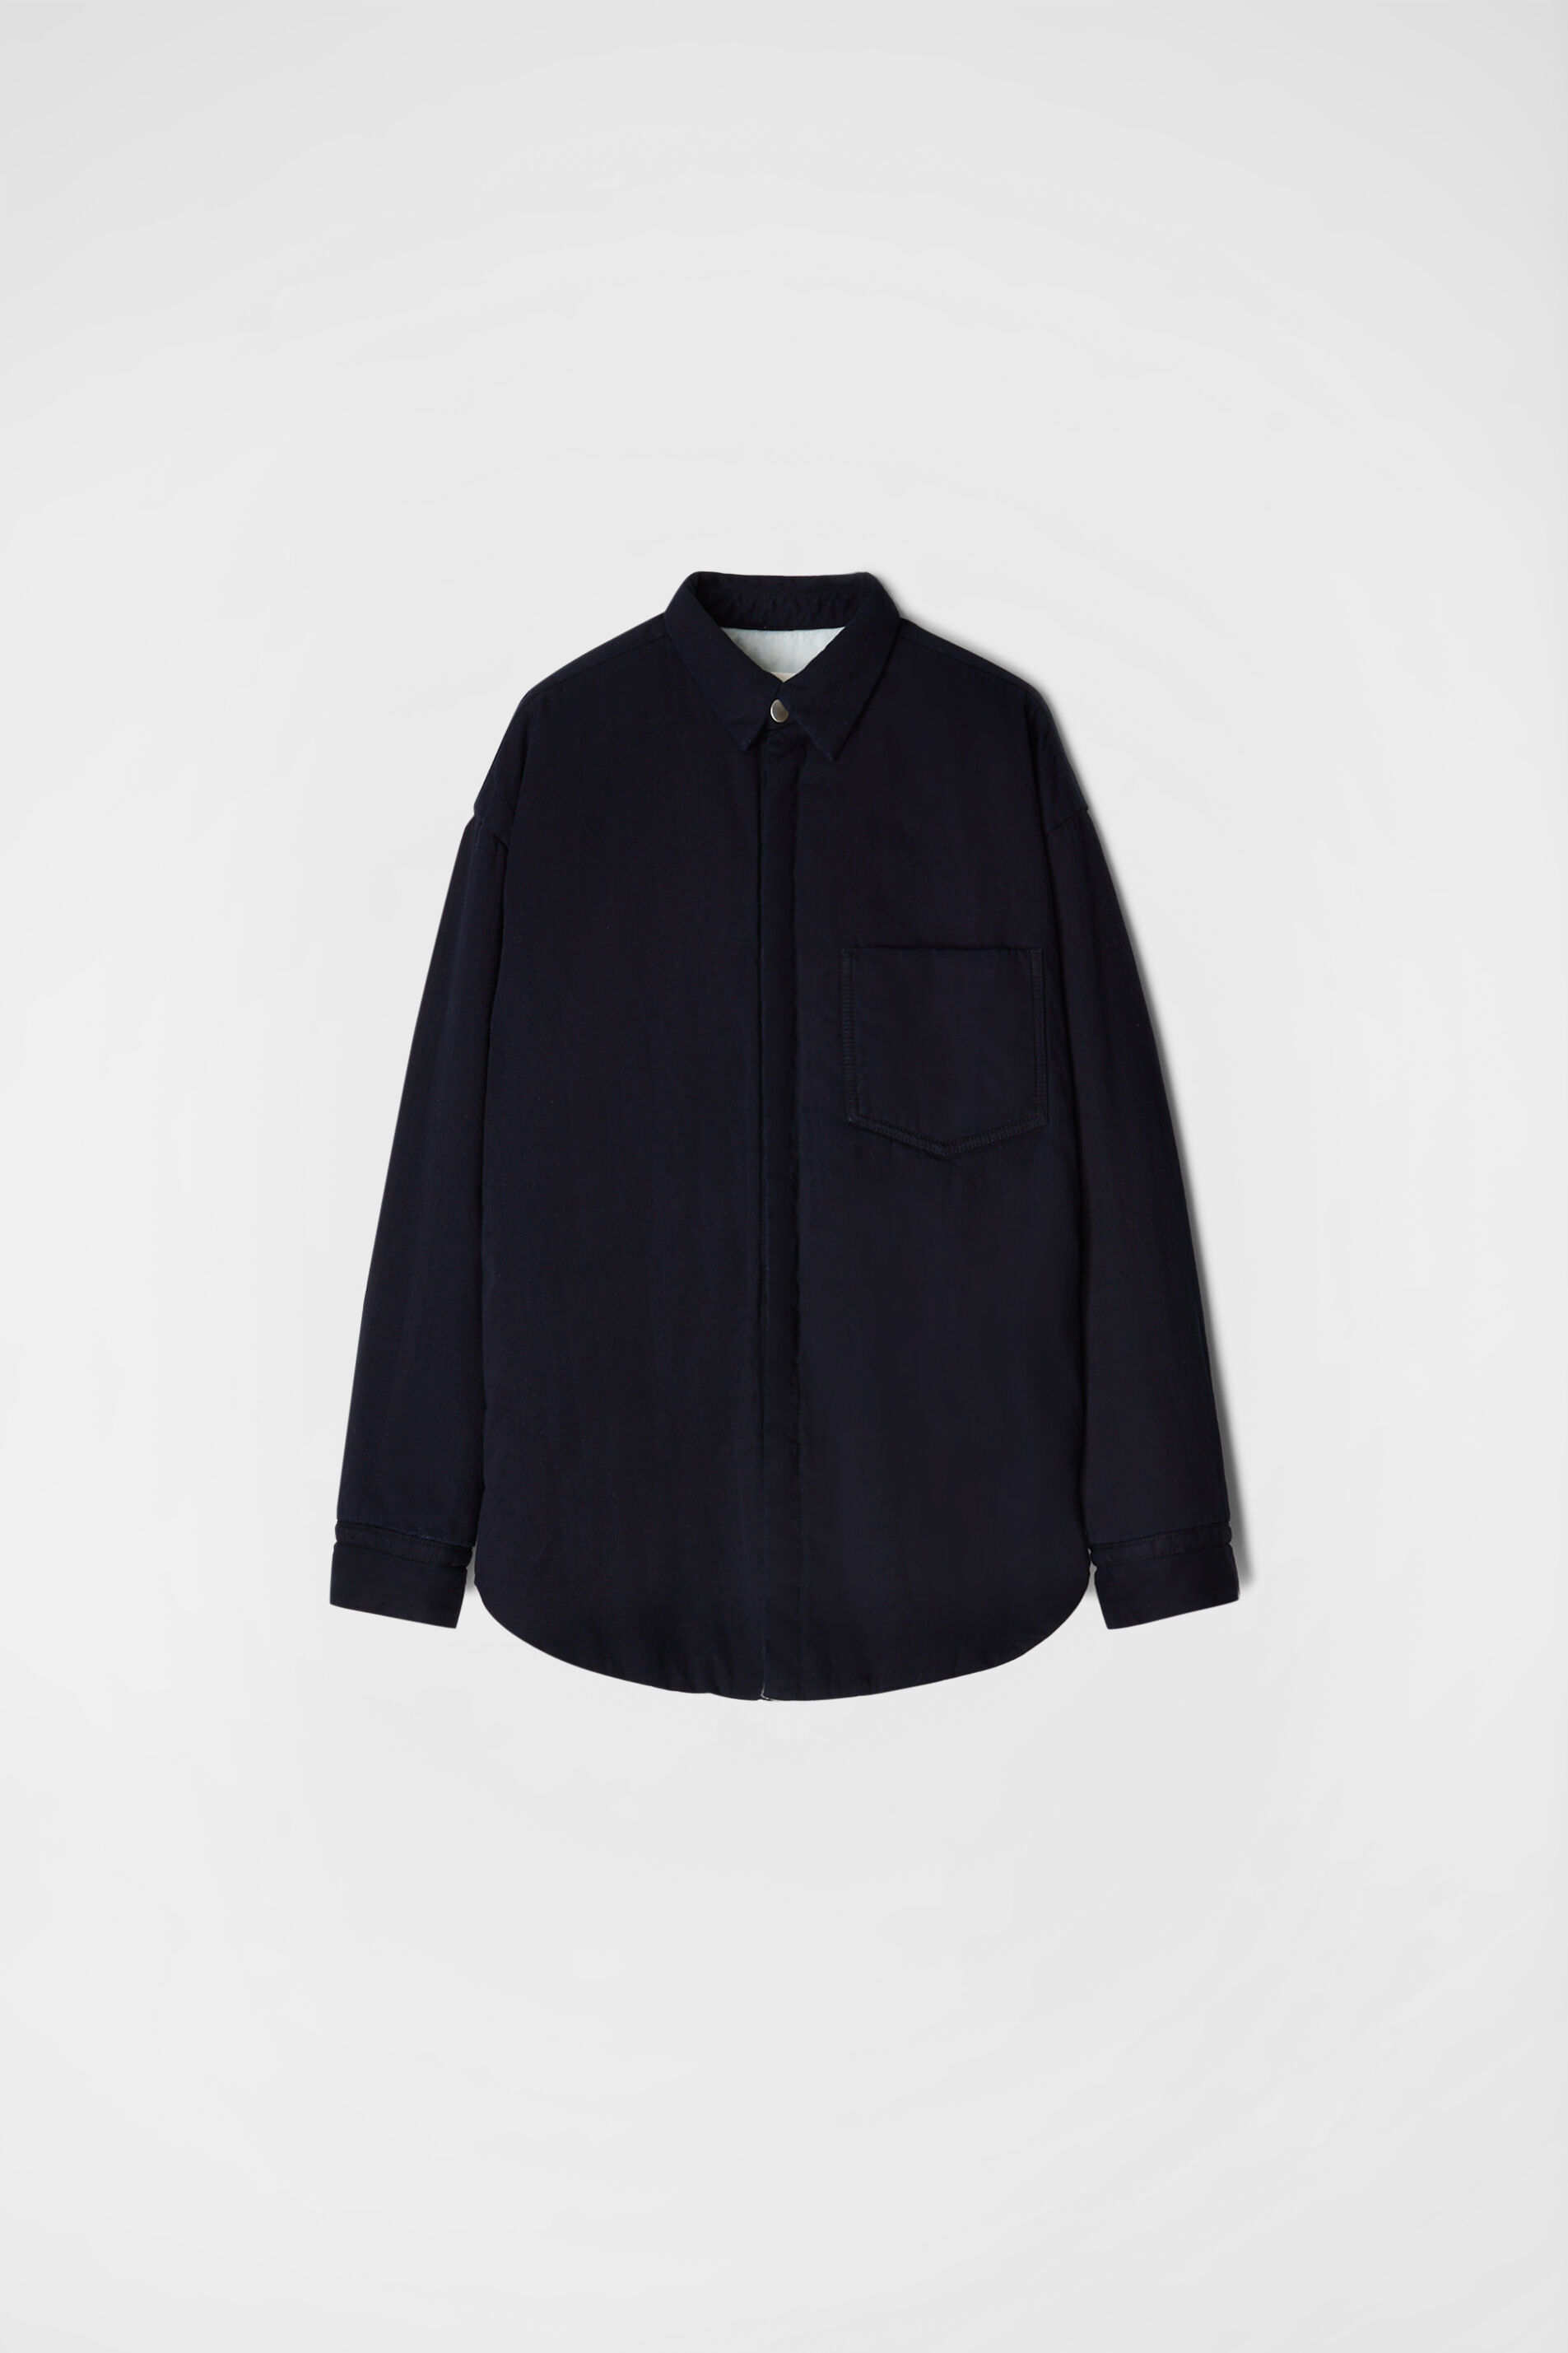 Padded Shirt, dark blue, large